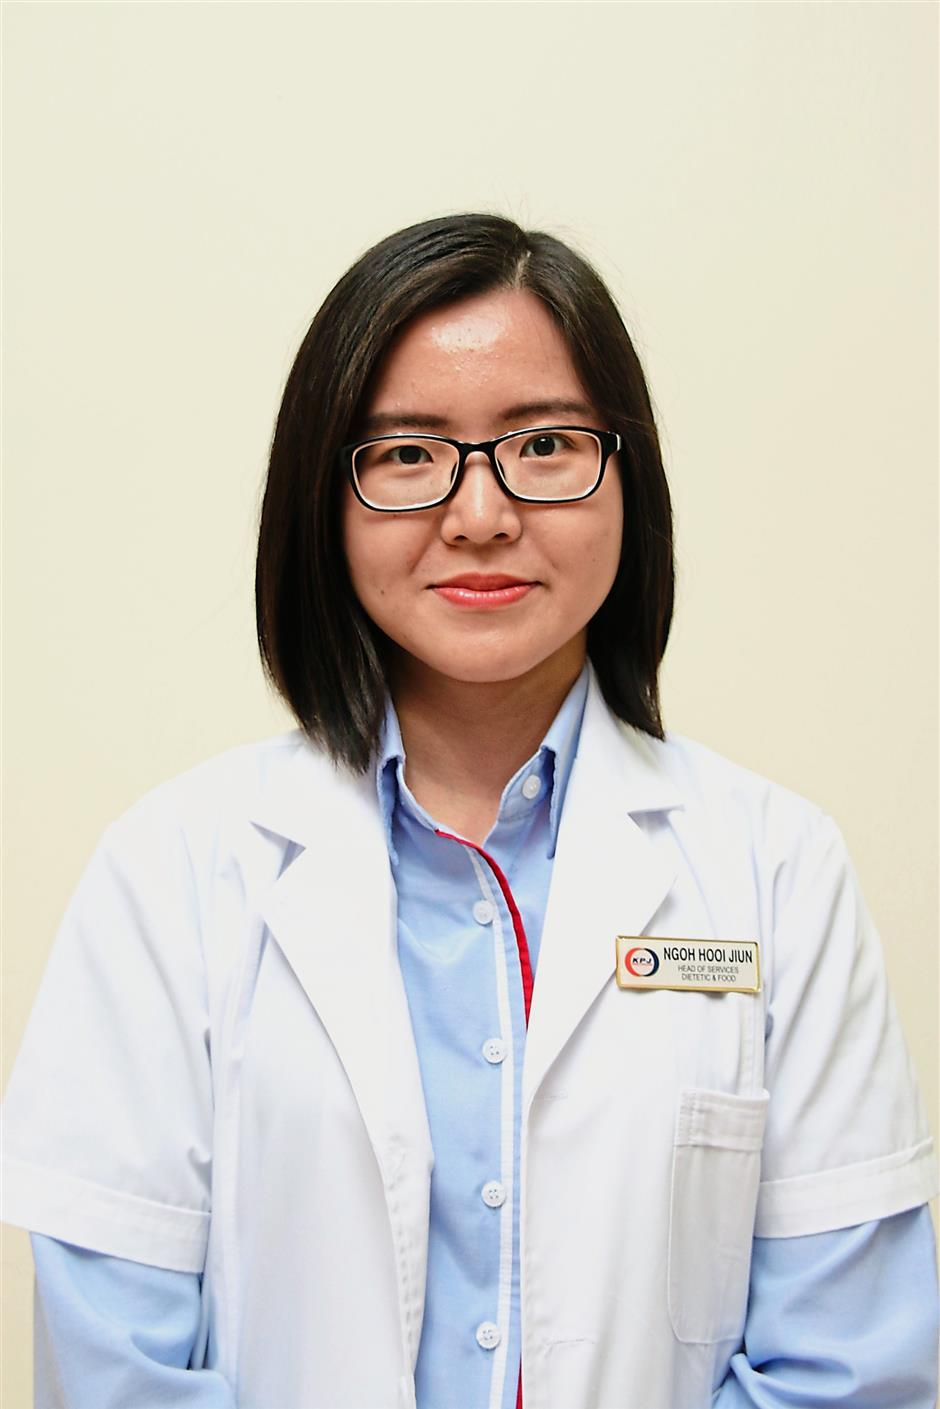 Sound advice: Dietitian Ngoh Hooi Jiun says that by swapping meat and other animal products for more beans, legumes, nuts, seeds, vegetables and fruits, people are not only losing weight but decreasing the risk of getting chronic diseases.